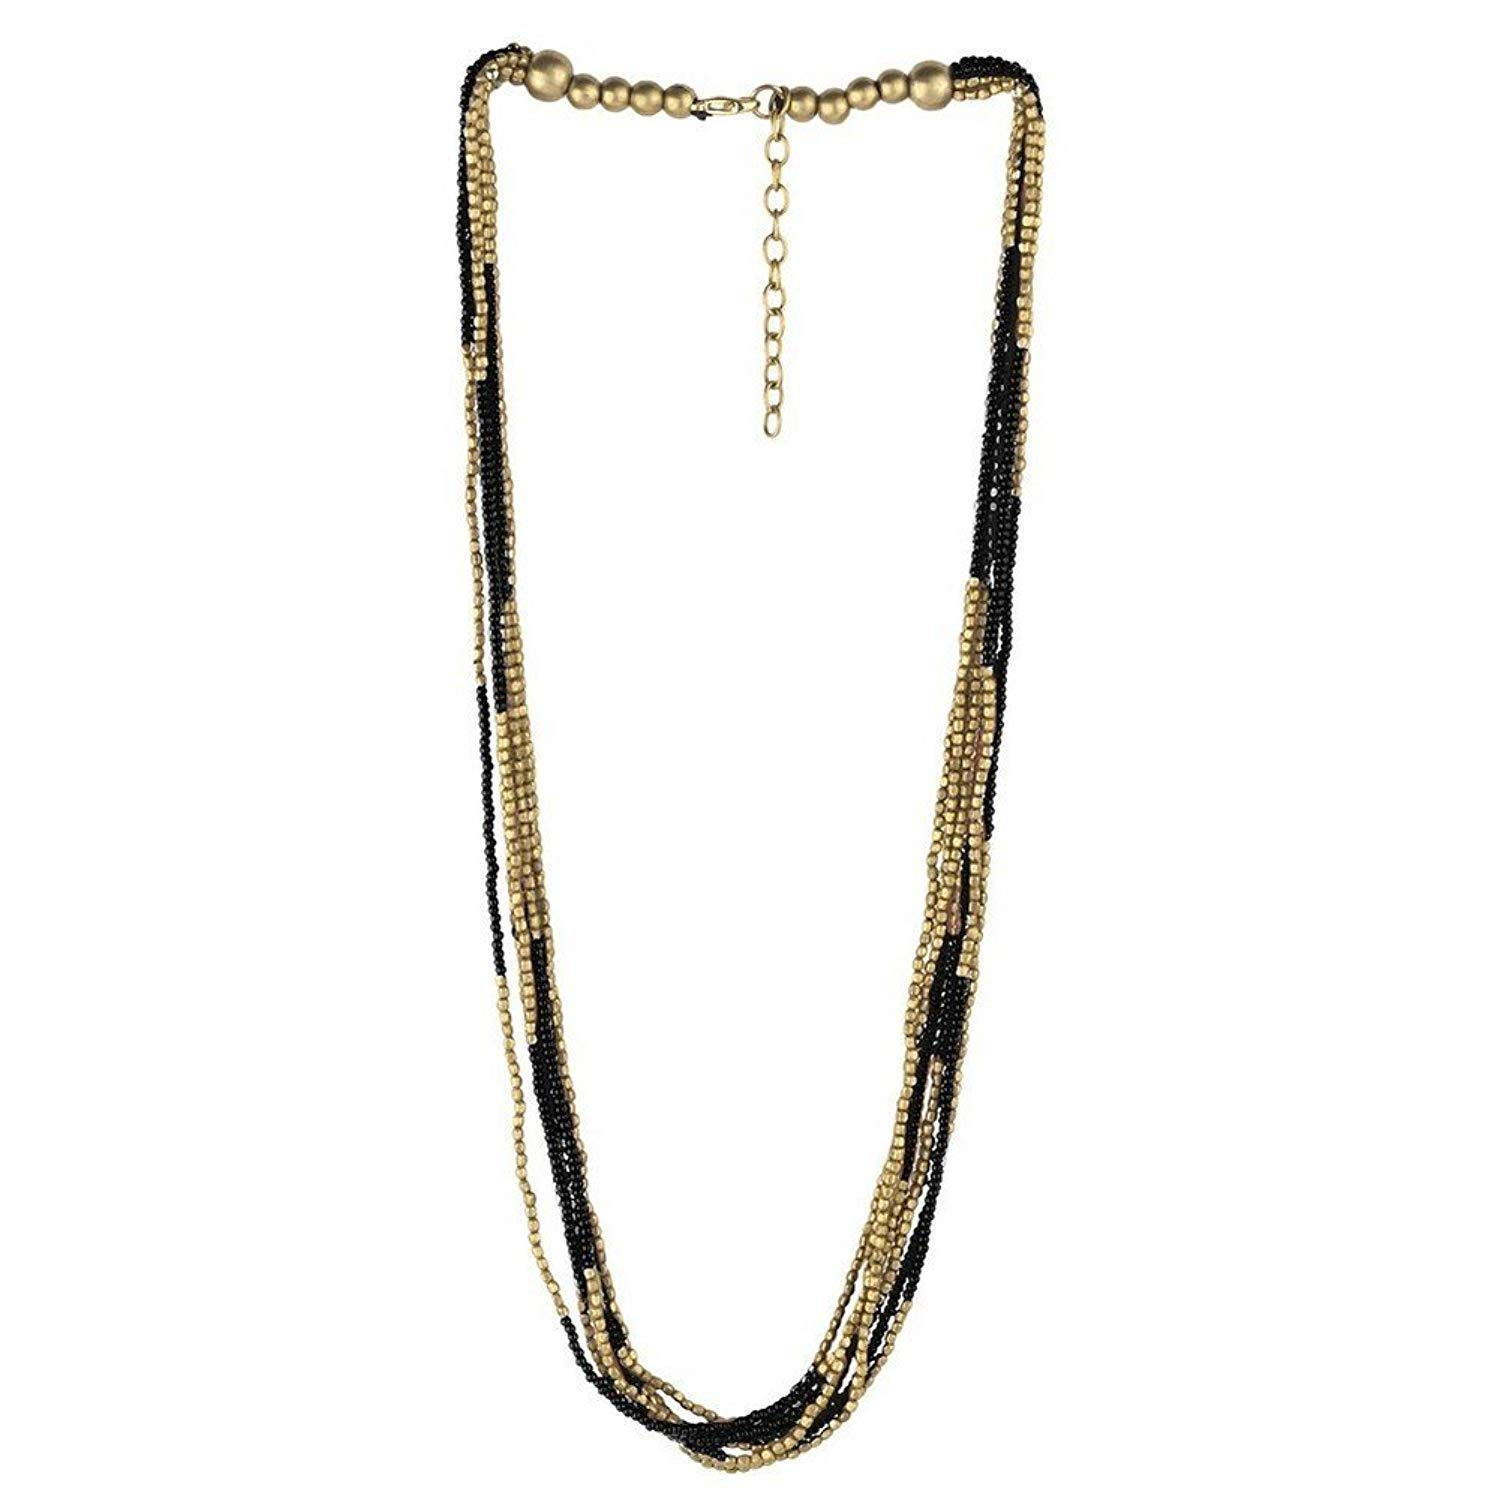 Joe Cool Bead String Necklace 3 Row Link Made With Glass /& Bead by